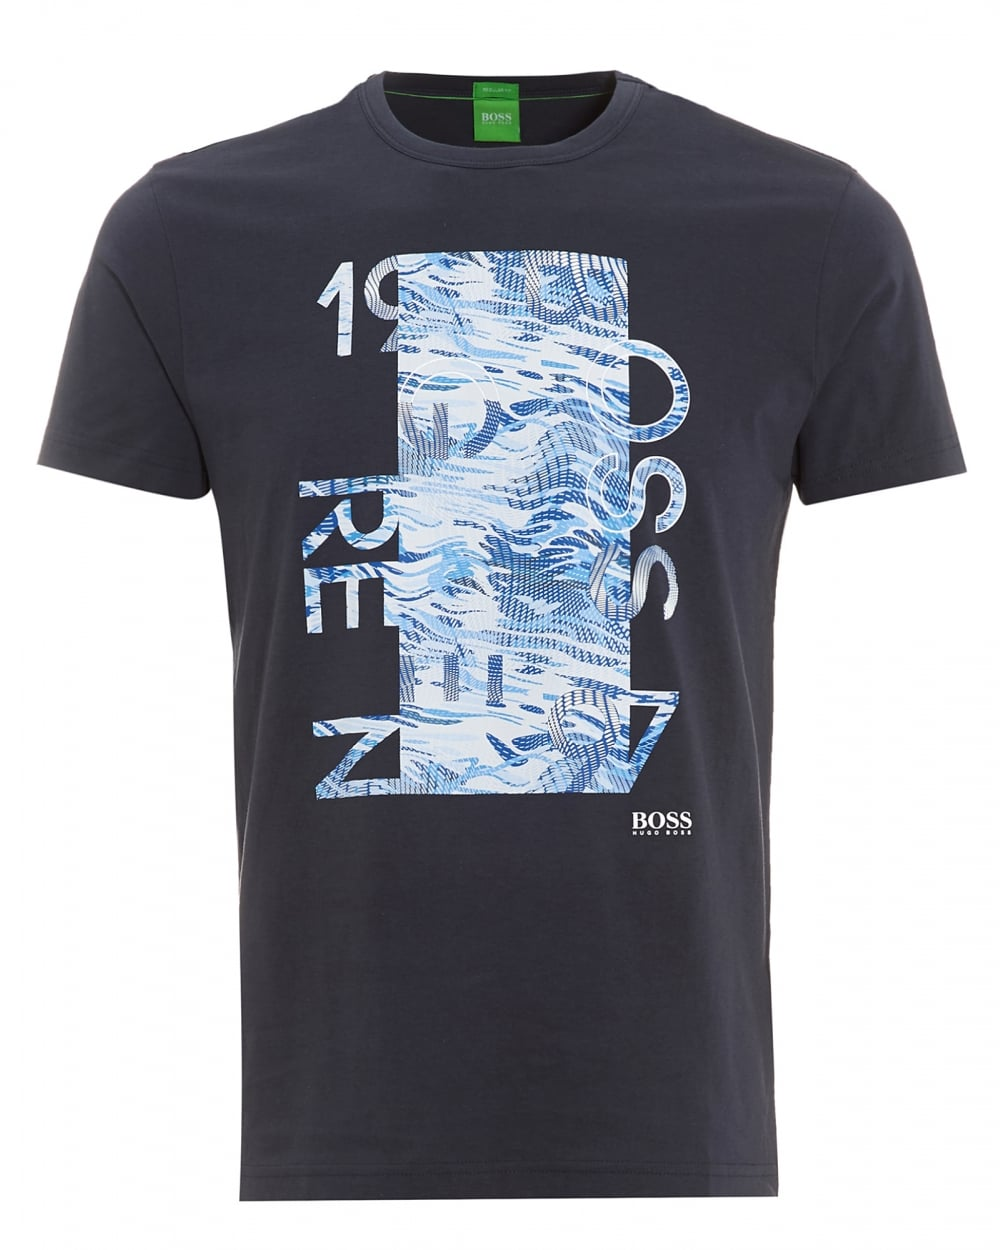 Hugo boss green mens tee 4 navy blue graphic print t shirt for Graphic t shirt printing company